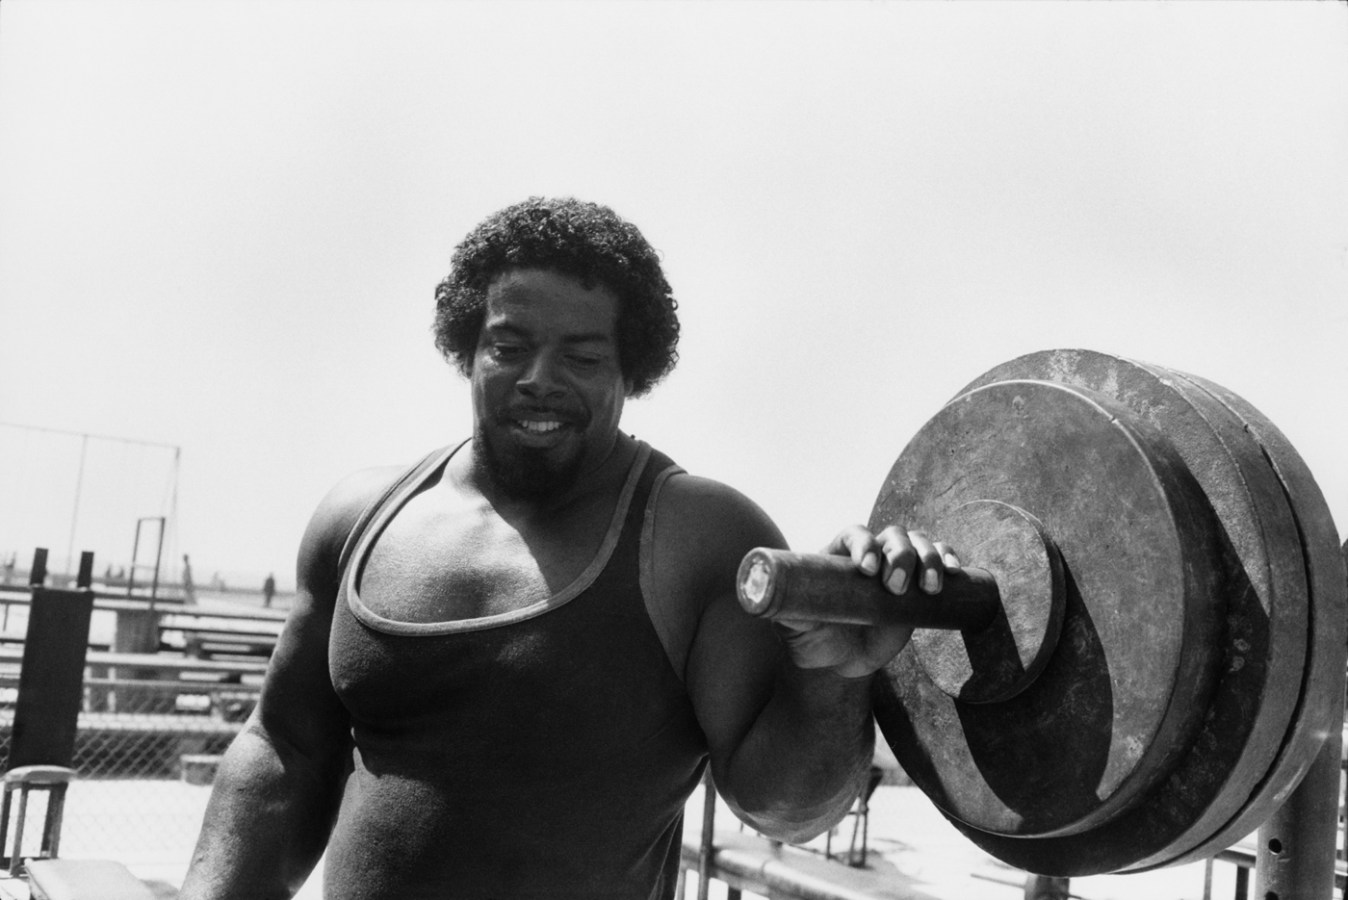 Black-and-white photograph of a muscular man in a tank top next to a large barbell weight